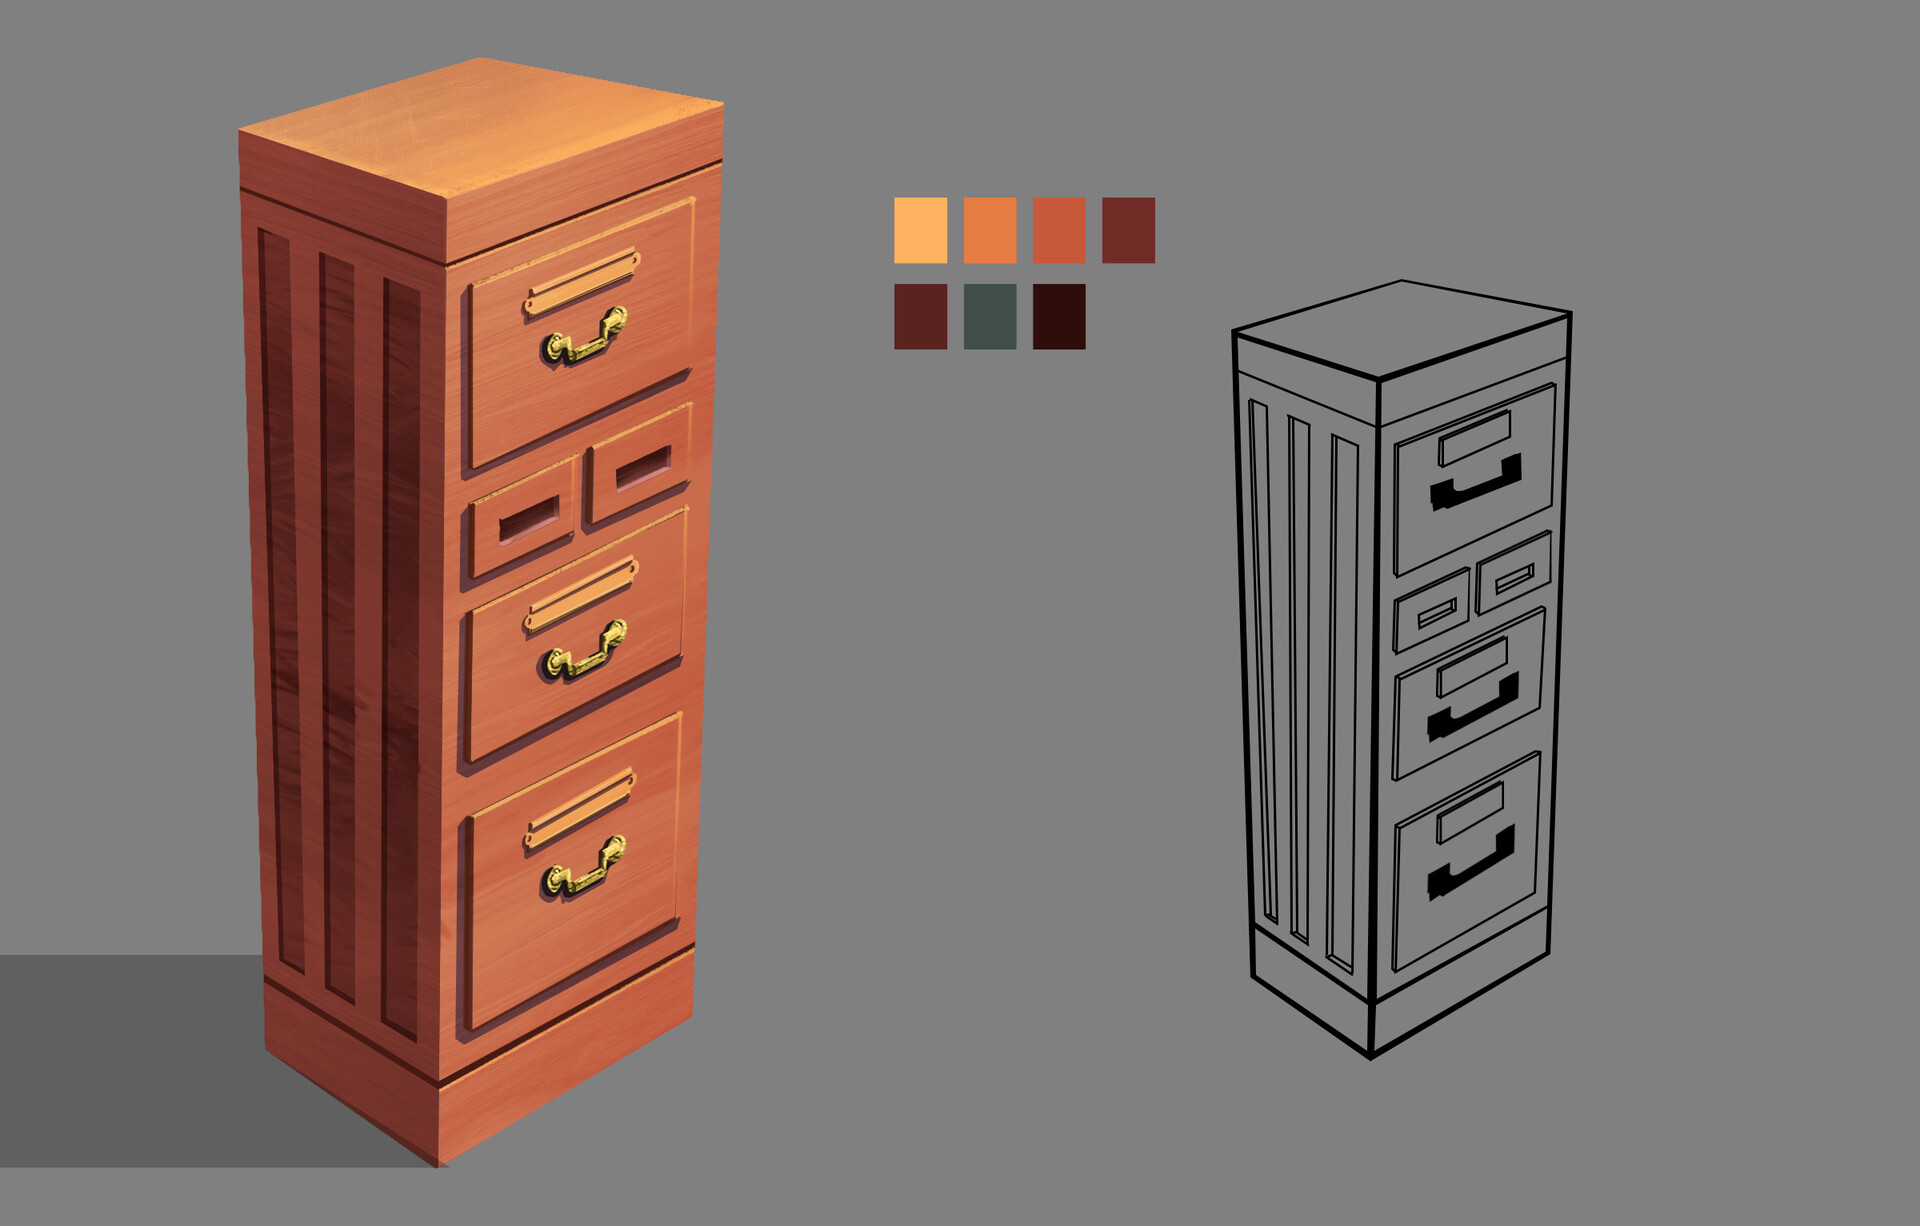 A Prop Design of file cabinet from the Edwardian Era.